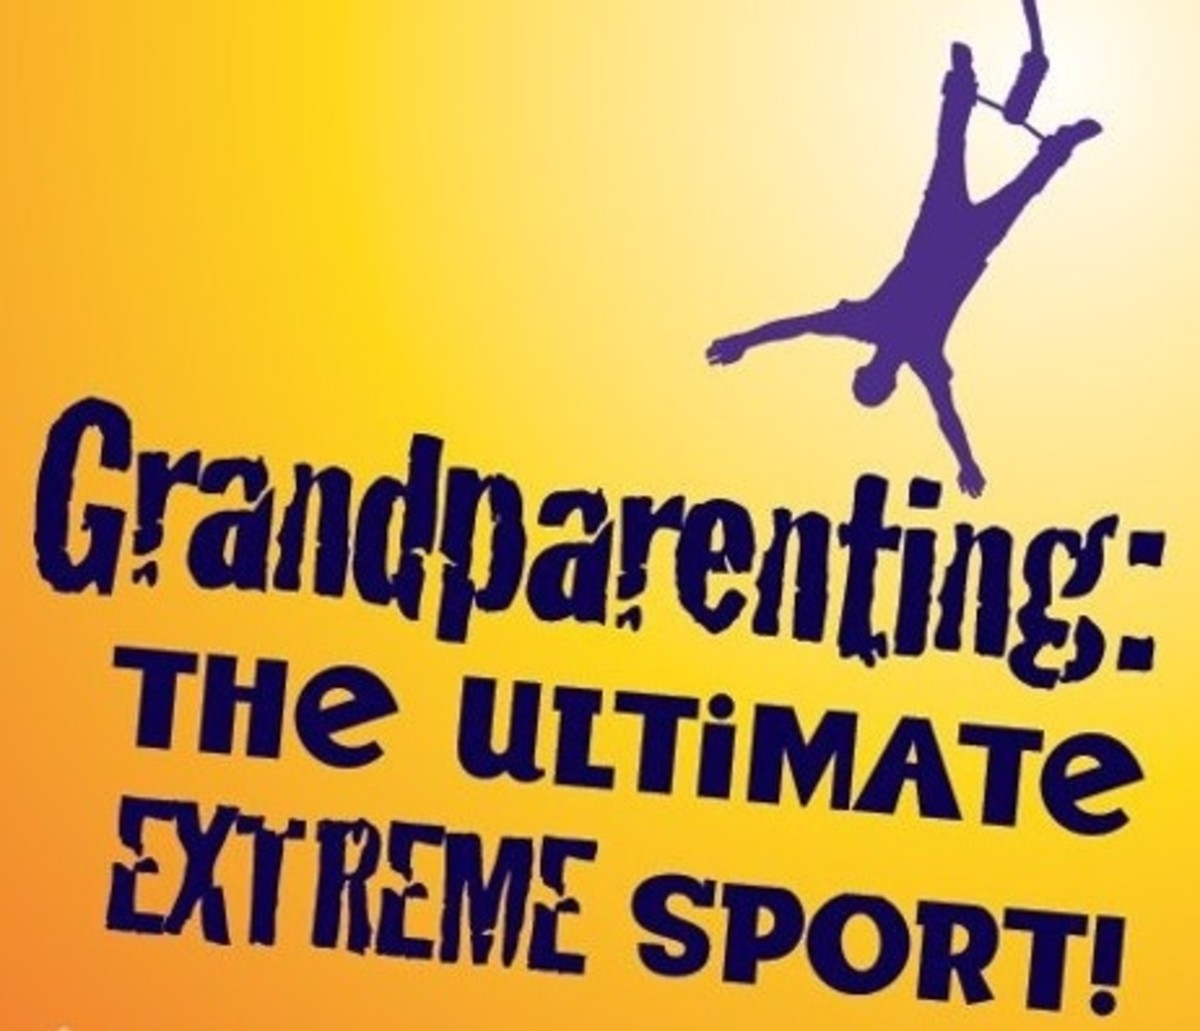 Grandparenting: The Ultimate Extreme Sport